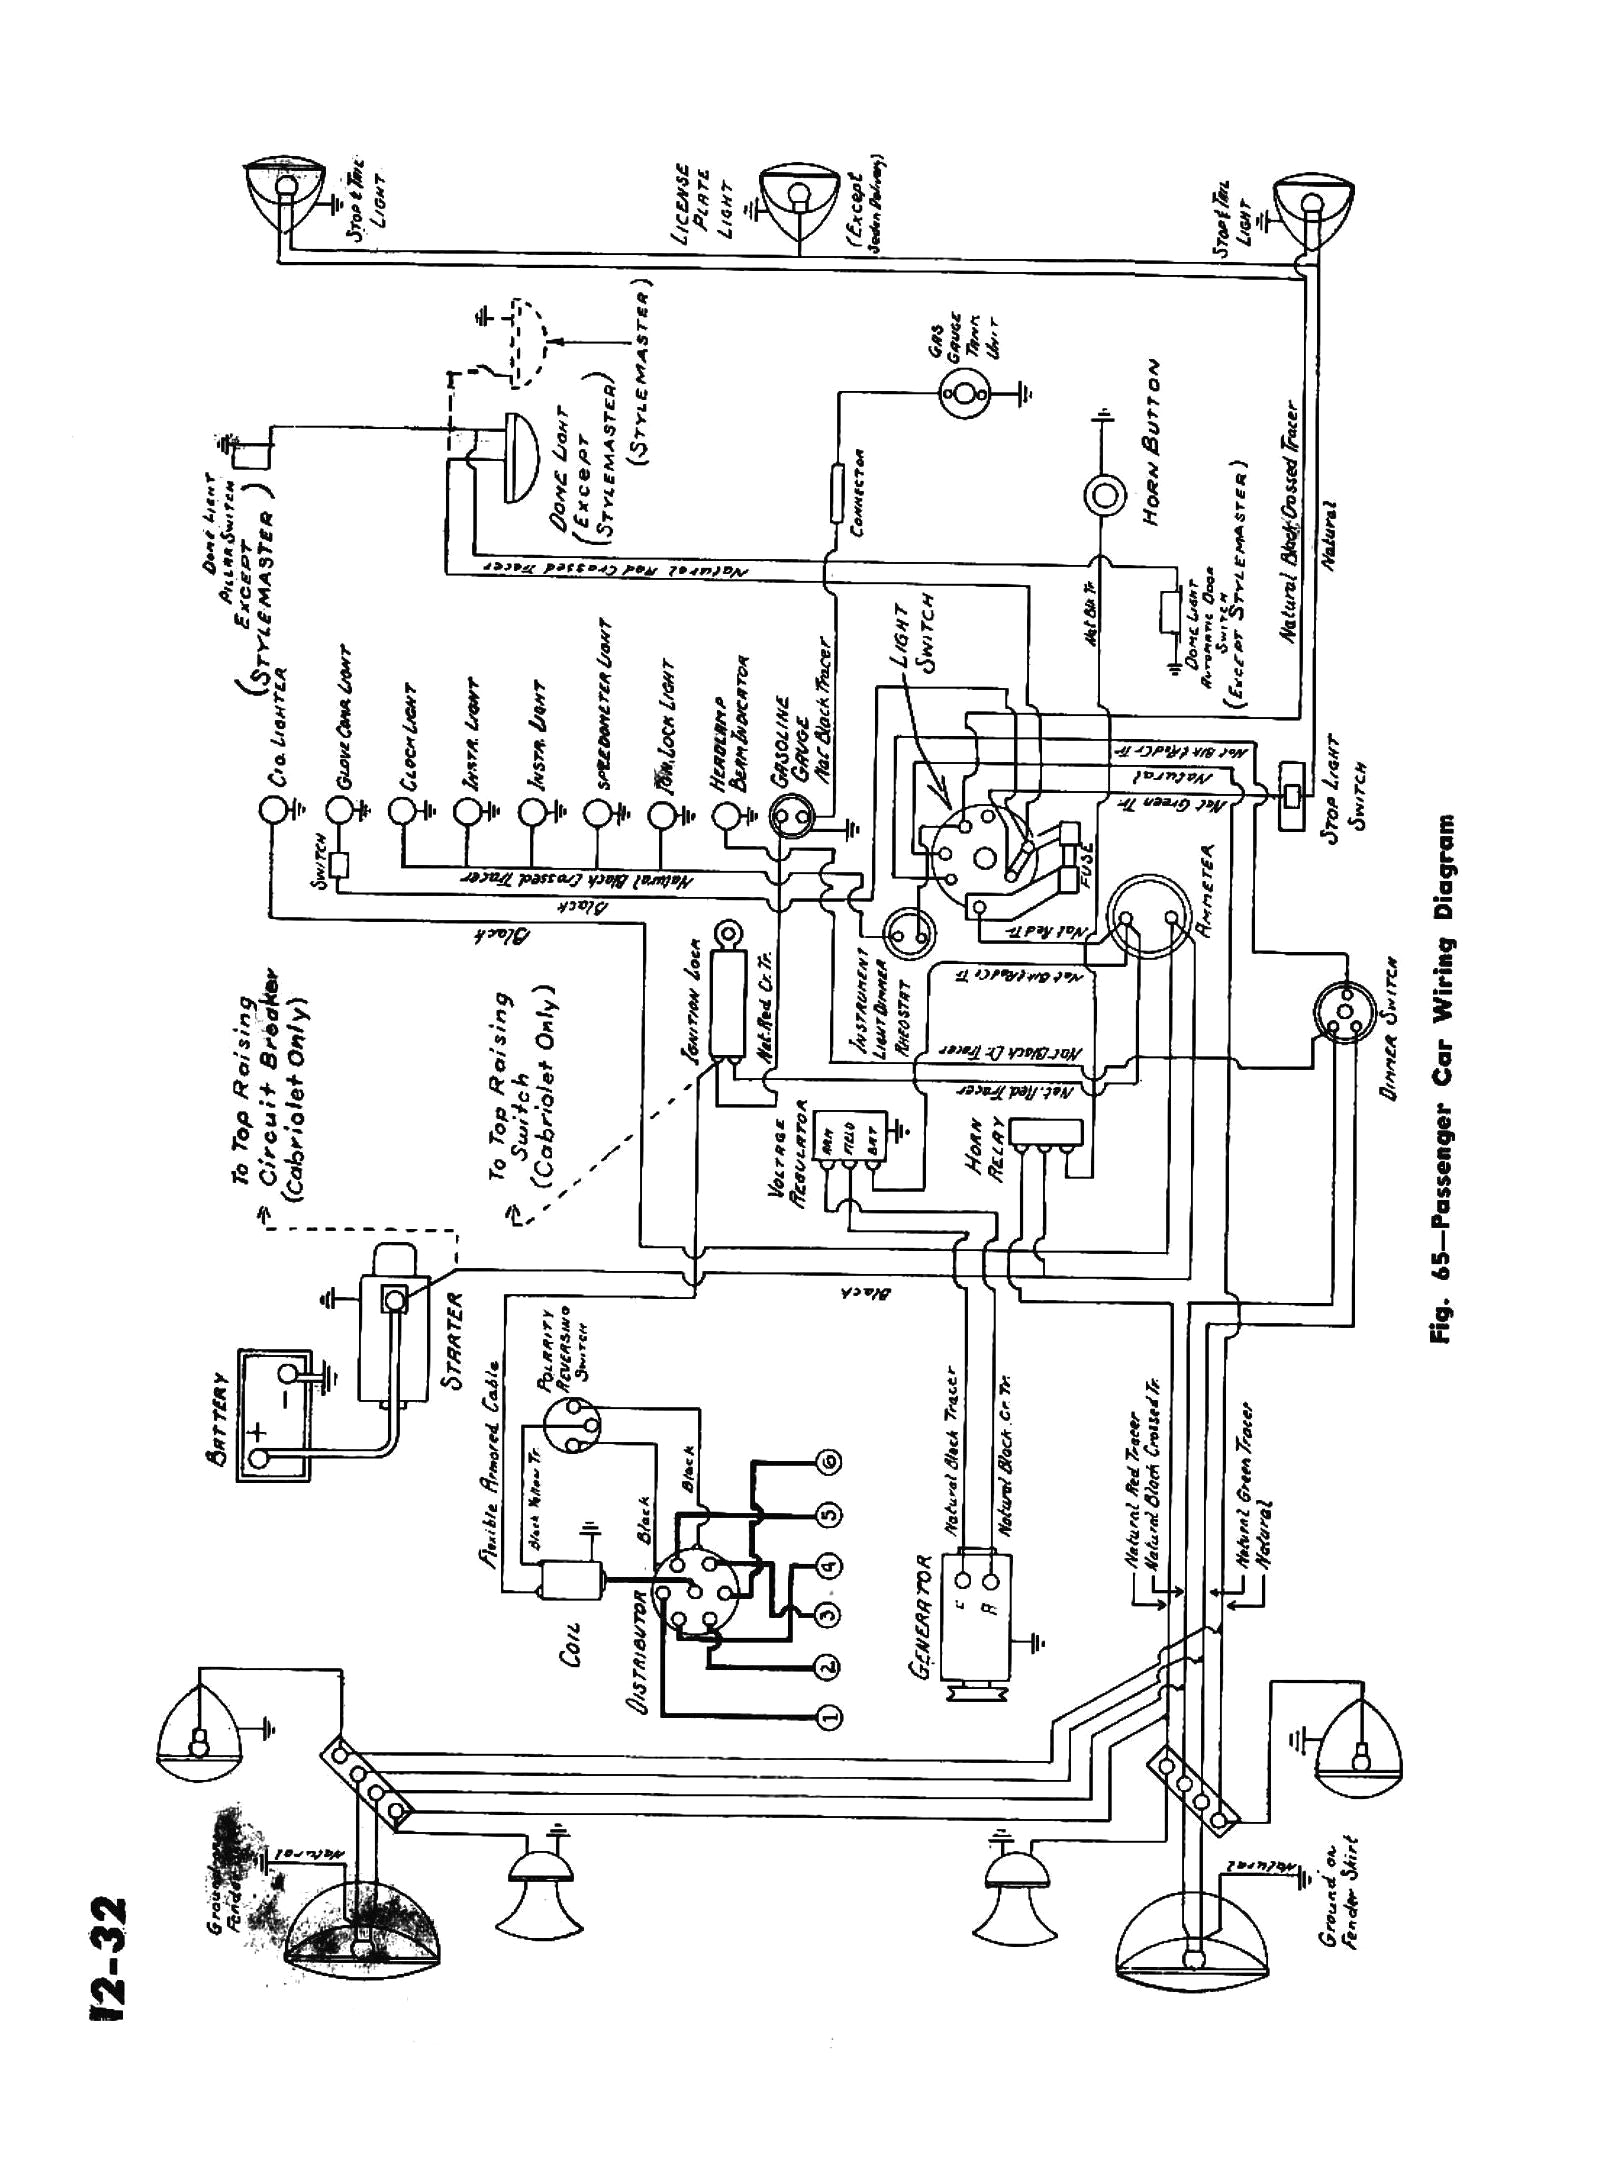 mito 02 wiring diagram Collection-Mito 02 Wiring Diagram Mito 02 Wiring Diagram Sample 17-b